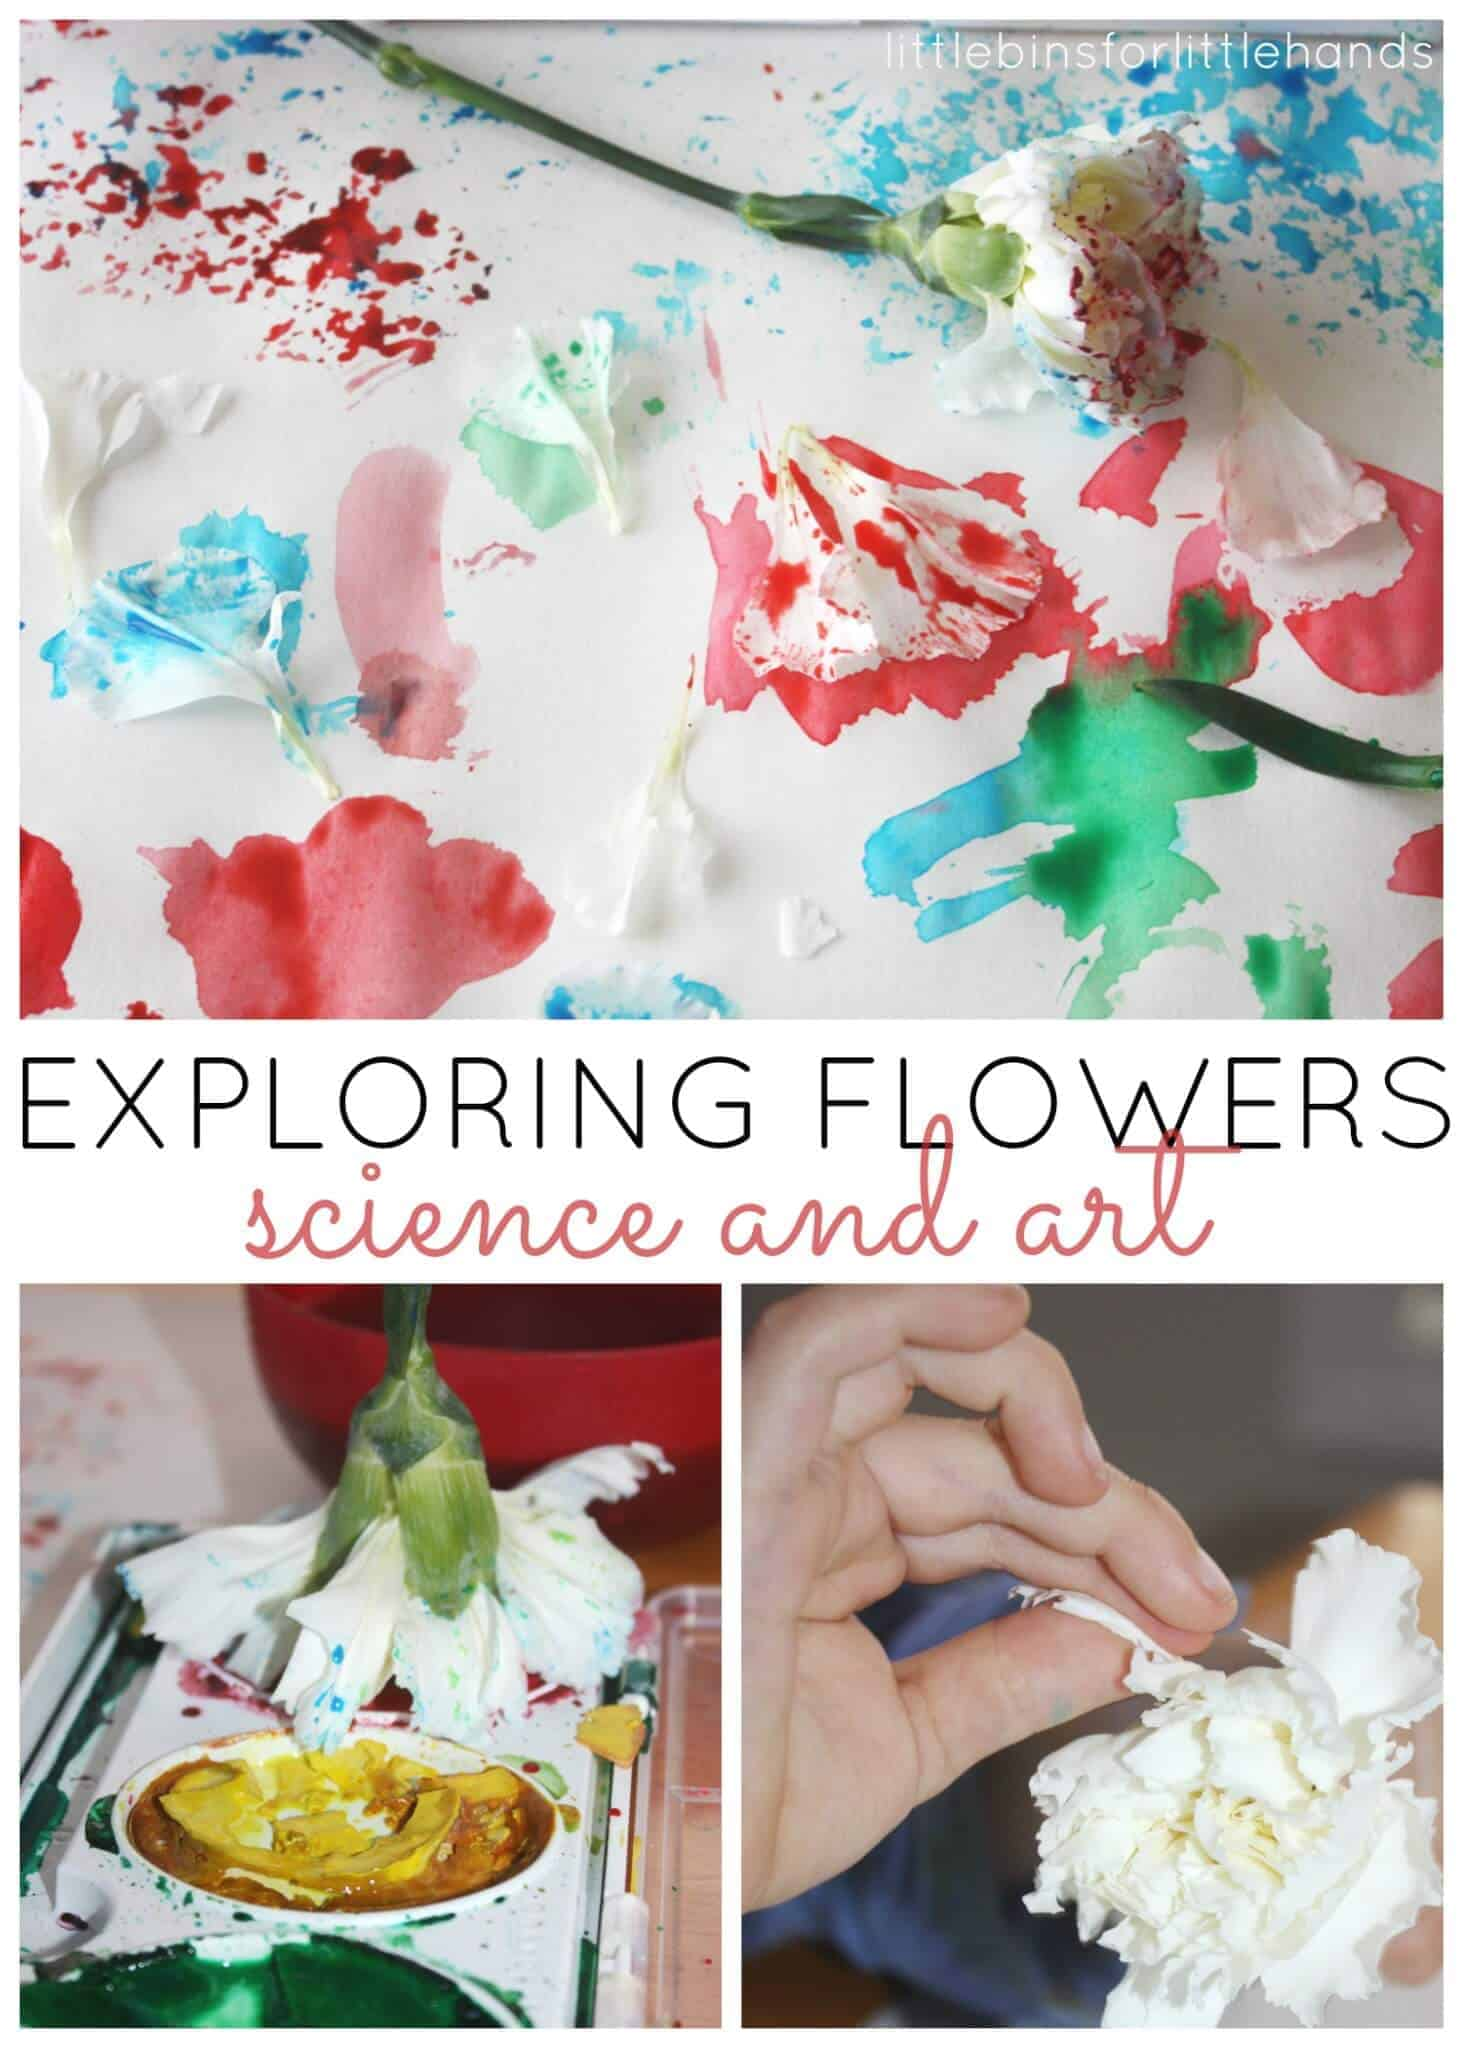 Flower Science and Art Activity for Kids